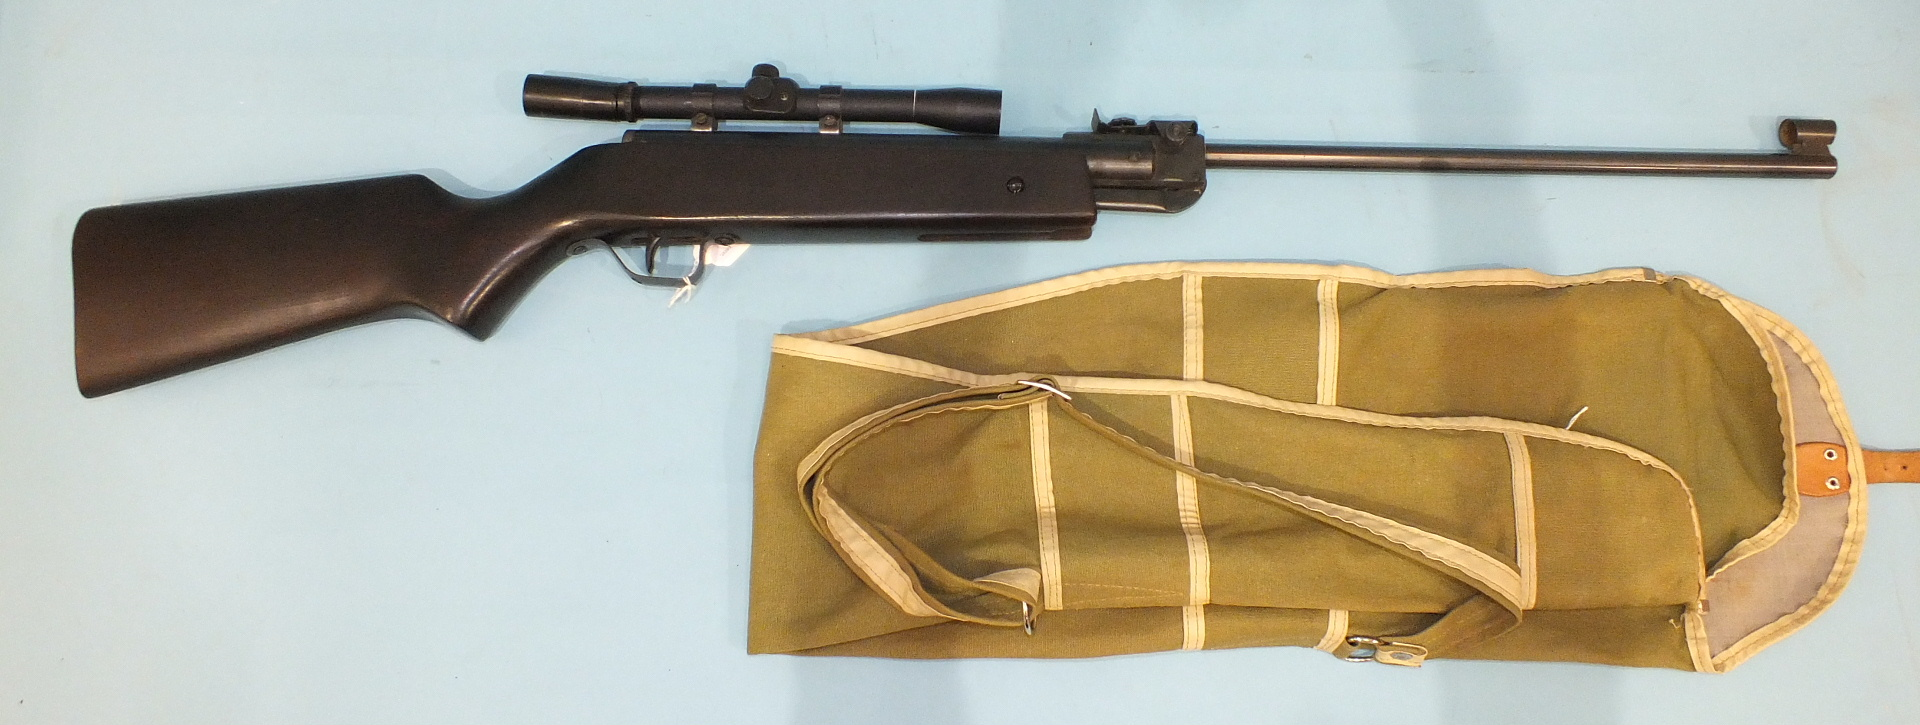 Lot 602 - A Hungarian .22 air rifle in canvas sleeve.